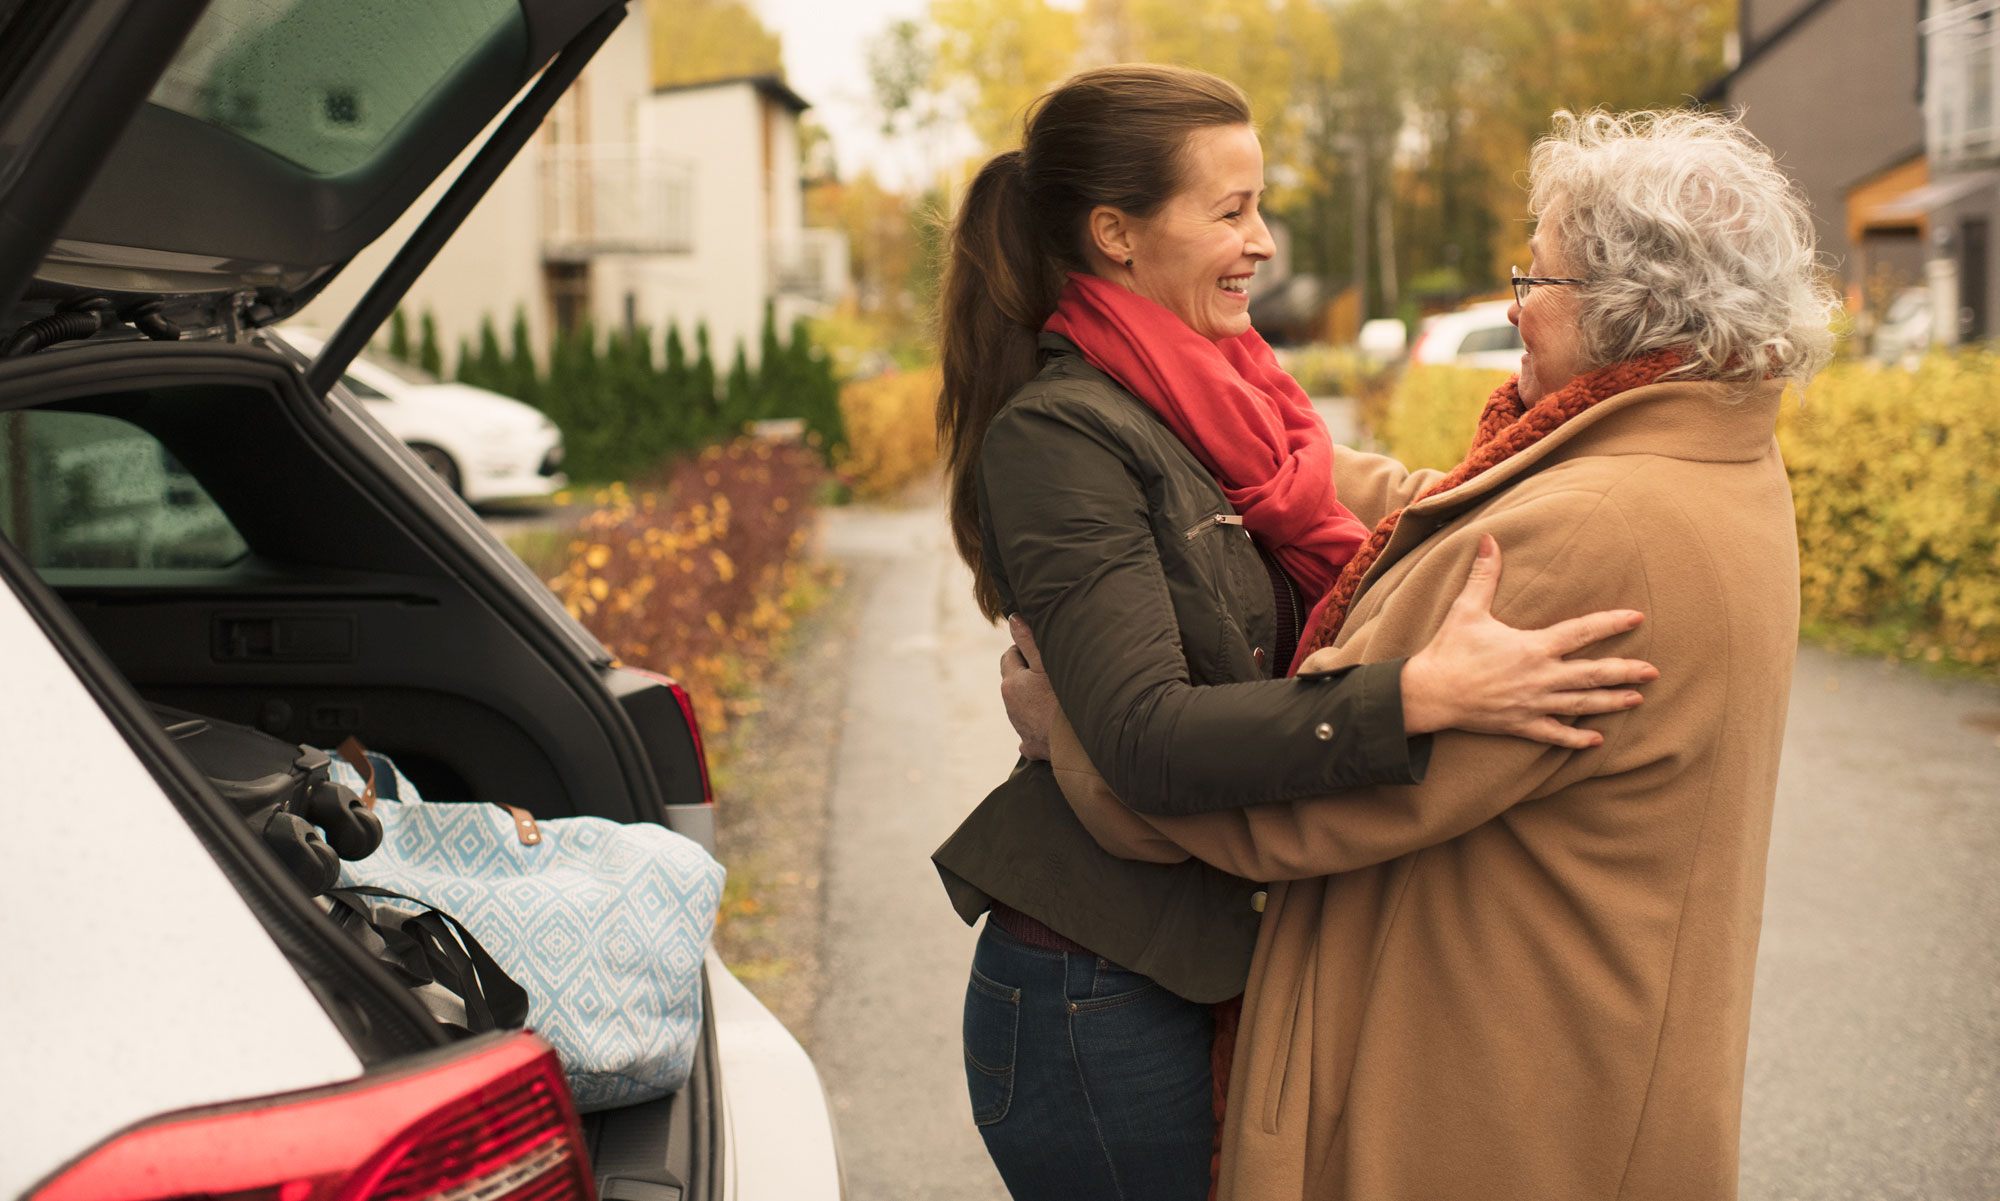 Older woman and younger woman hugging, saying goodbye in front of a car